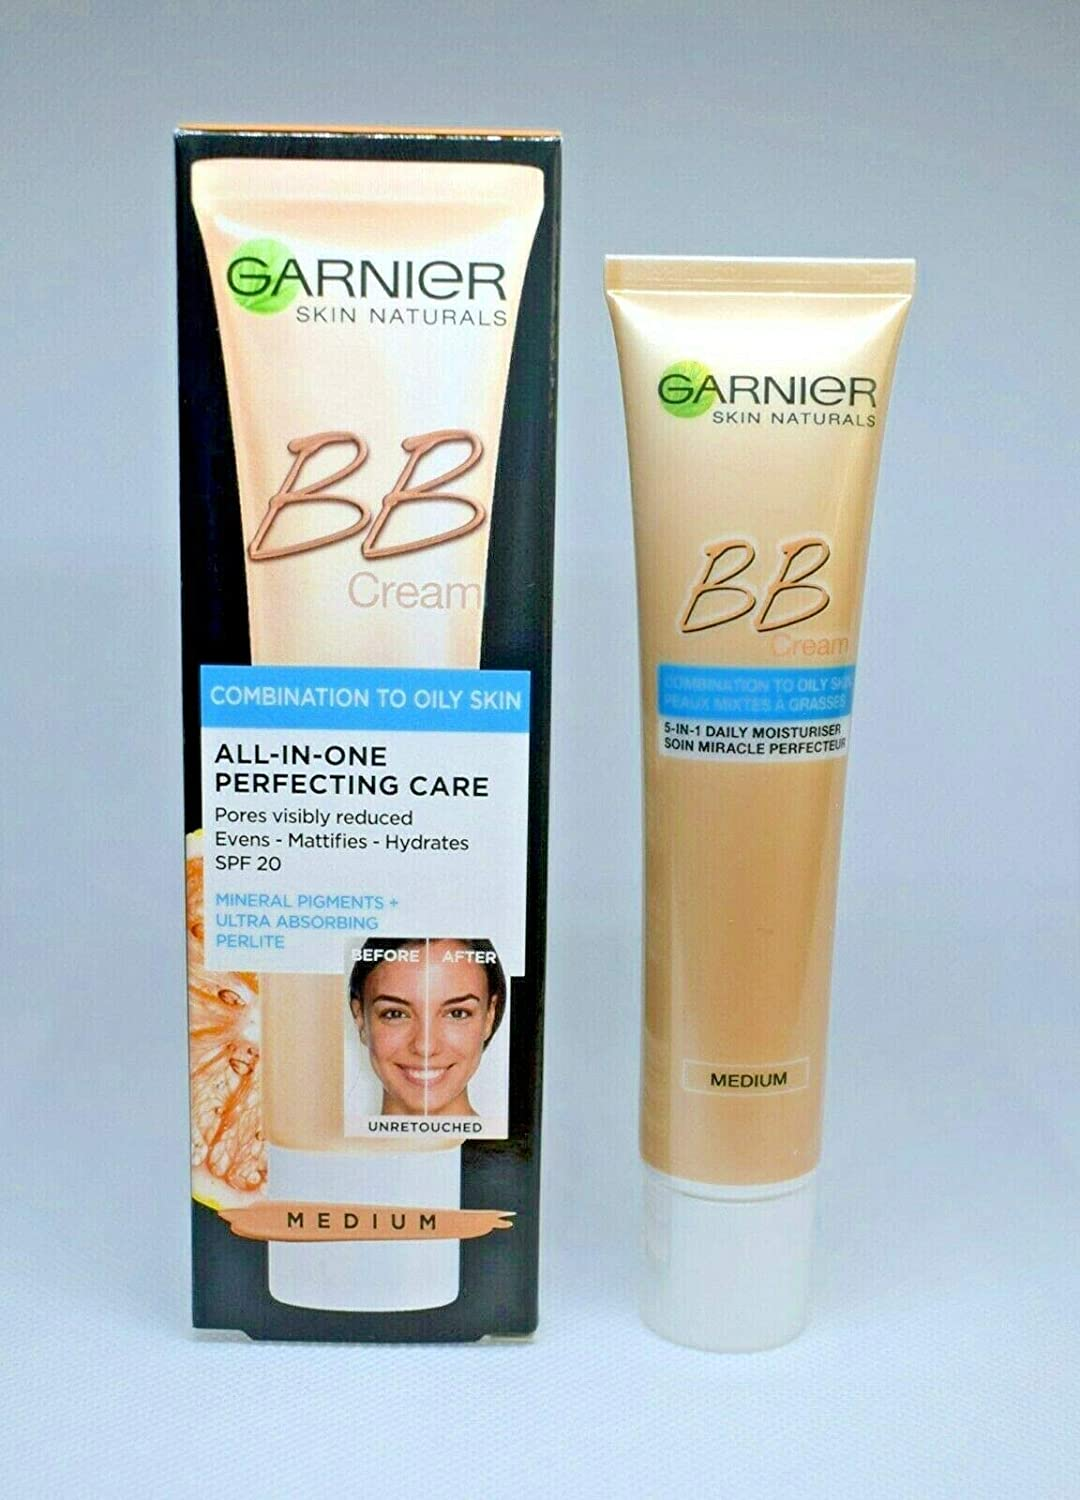 Miracle Skin Perfector by Garnier Daily All-In-One B.B. (Blemish Balm) Cream ...